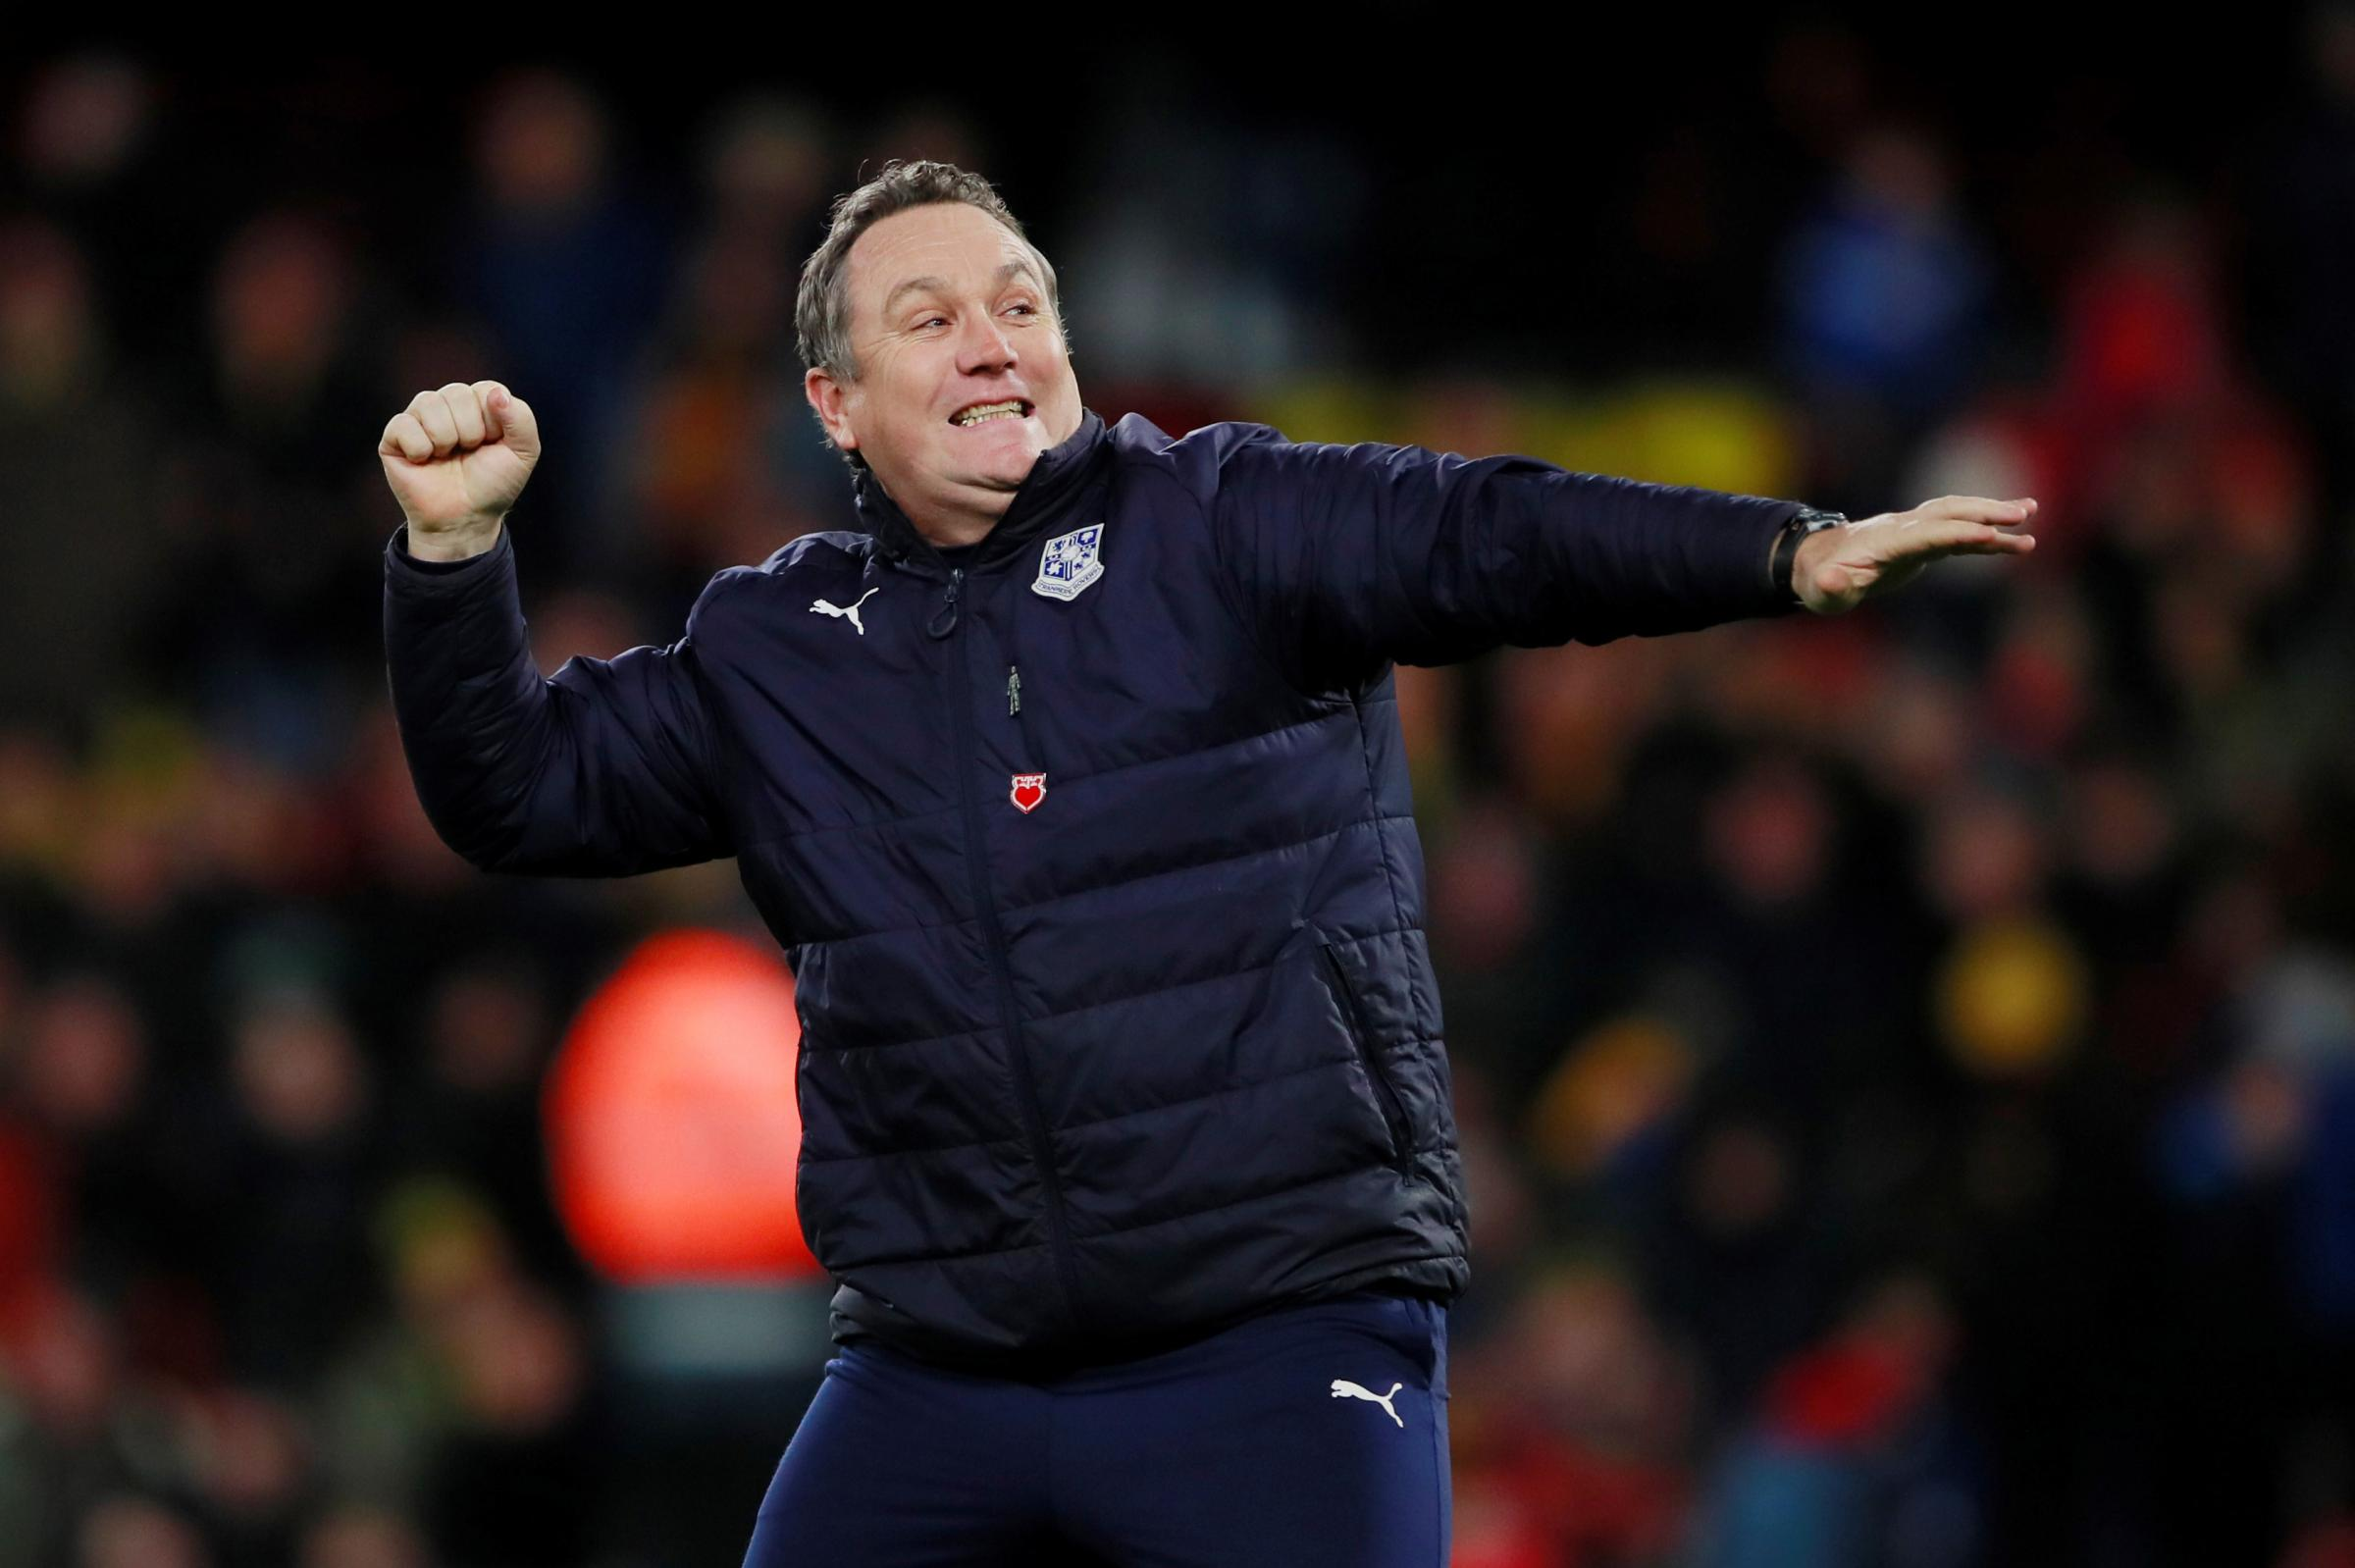 Tranmere Rovers boss Micky Mellon focused on Watford and not potential Manchester United FA Cup clash